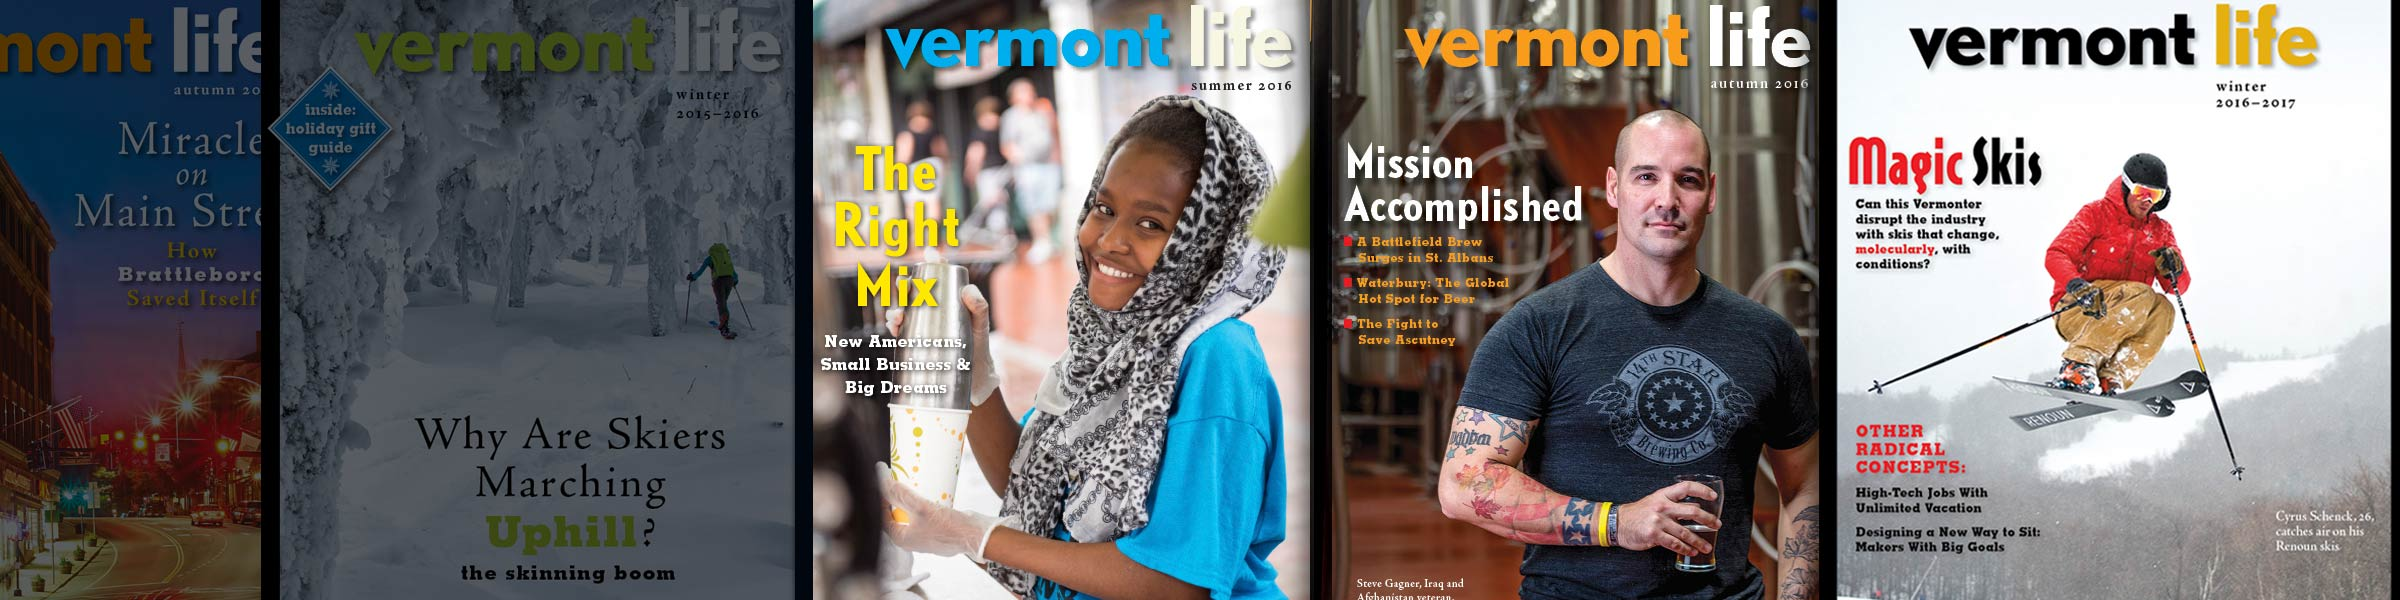 Vermont Life Magazine Covers, with the Winter 2016-2017 edition.